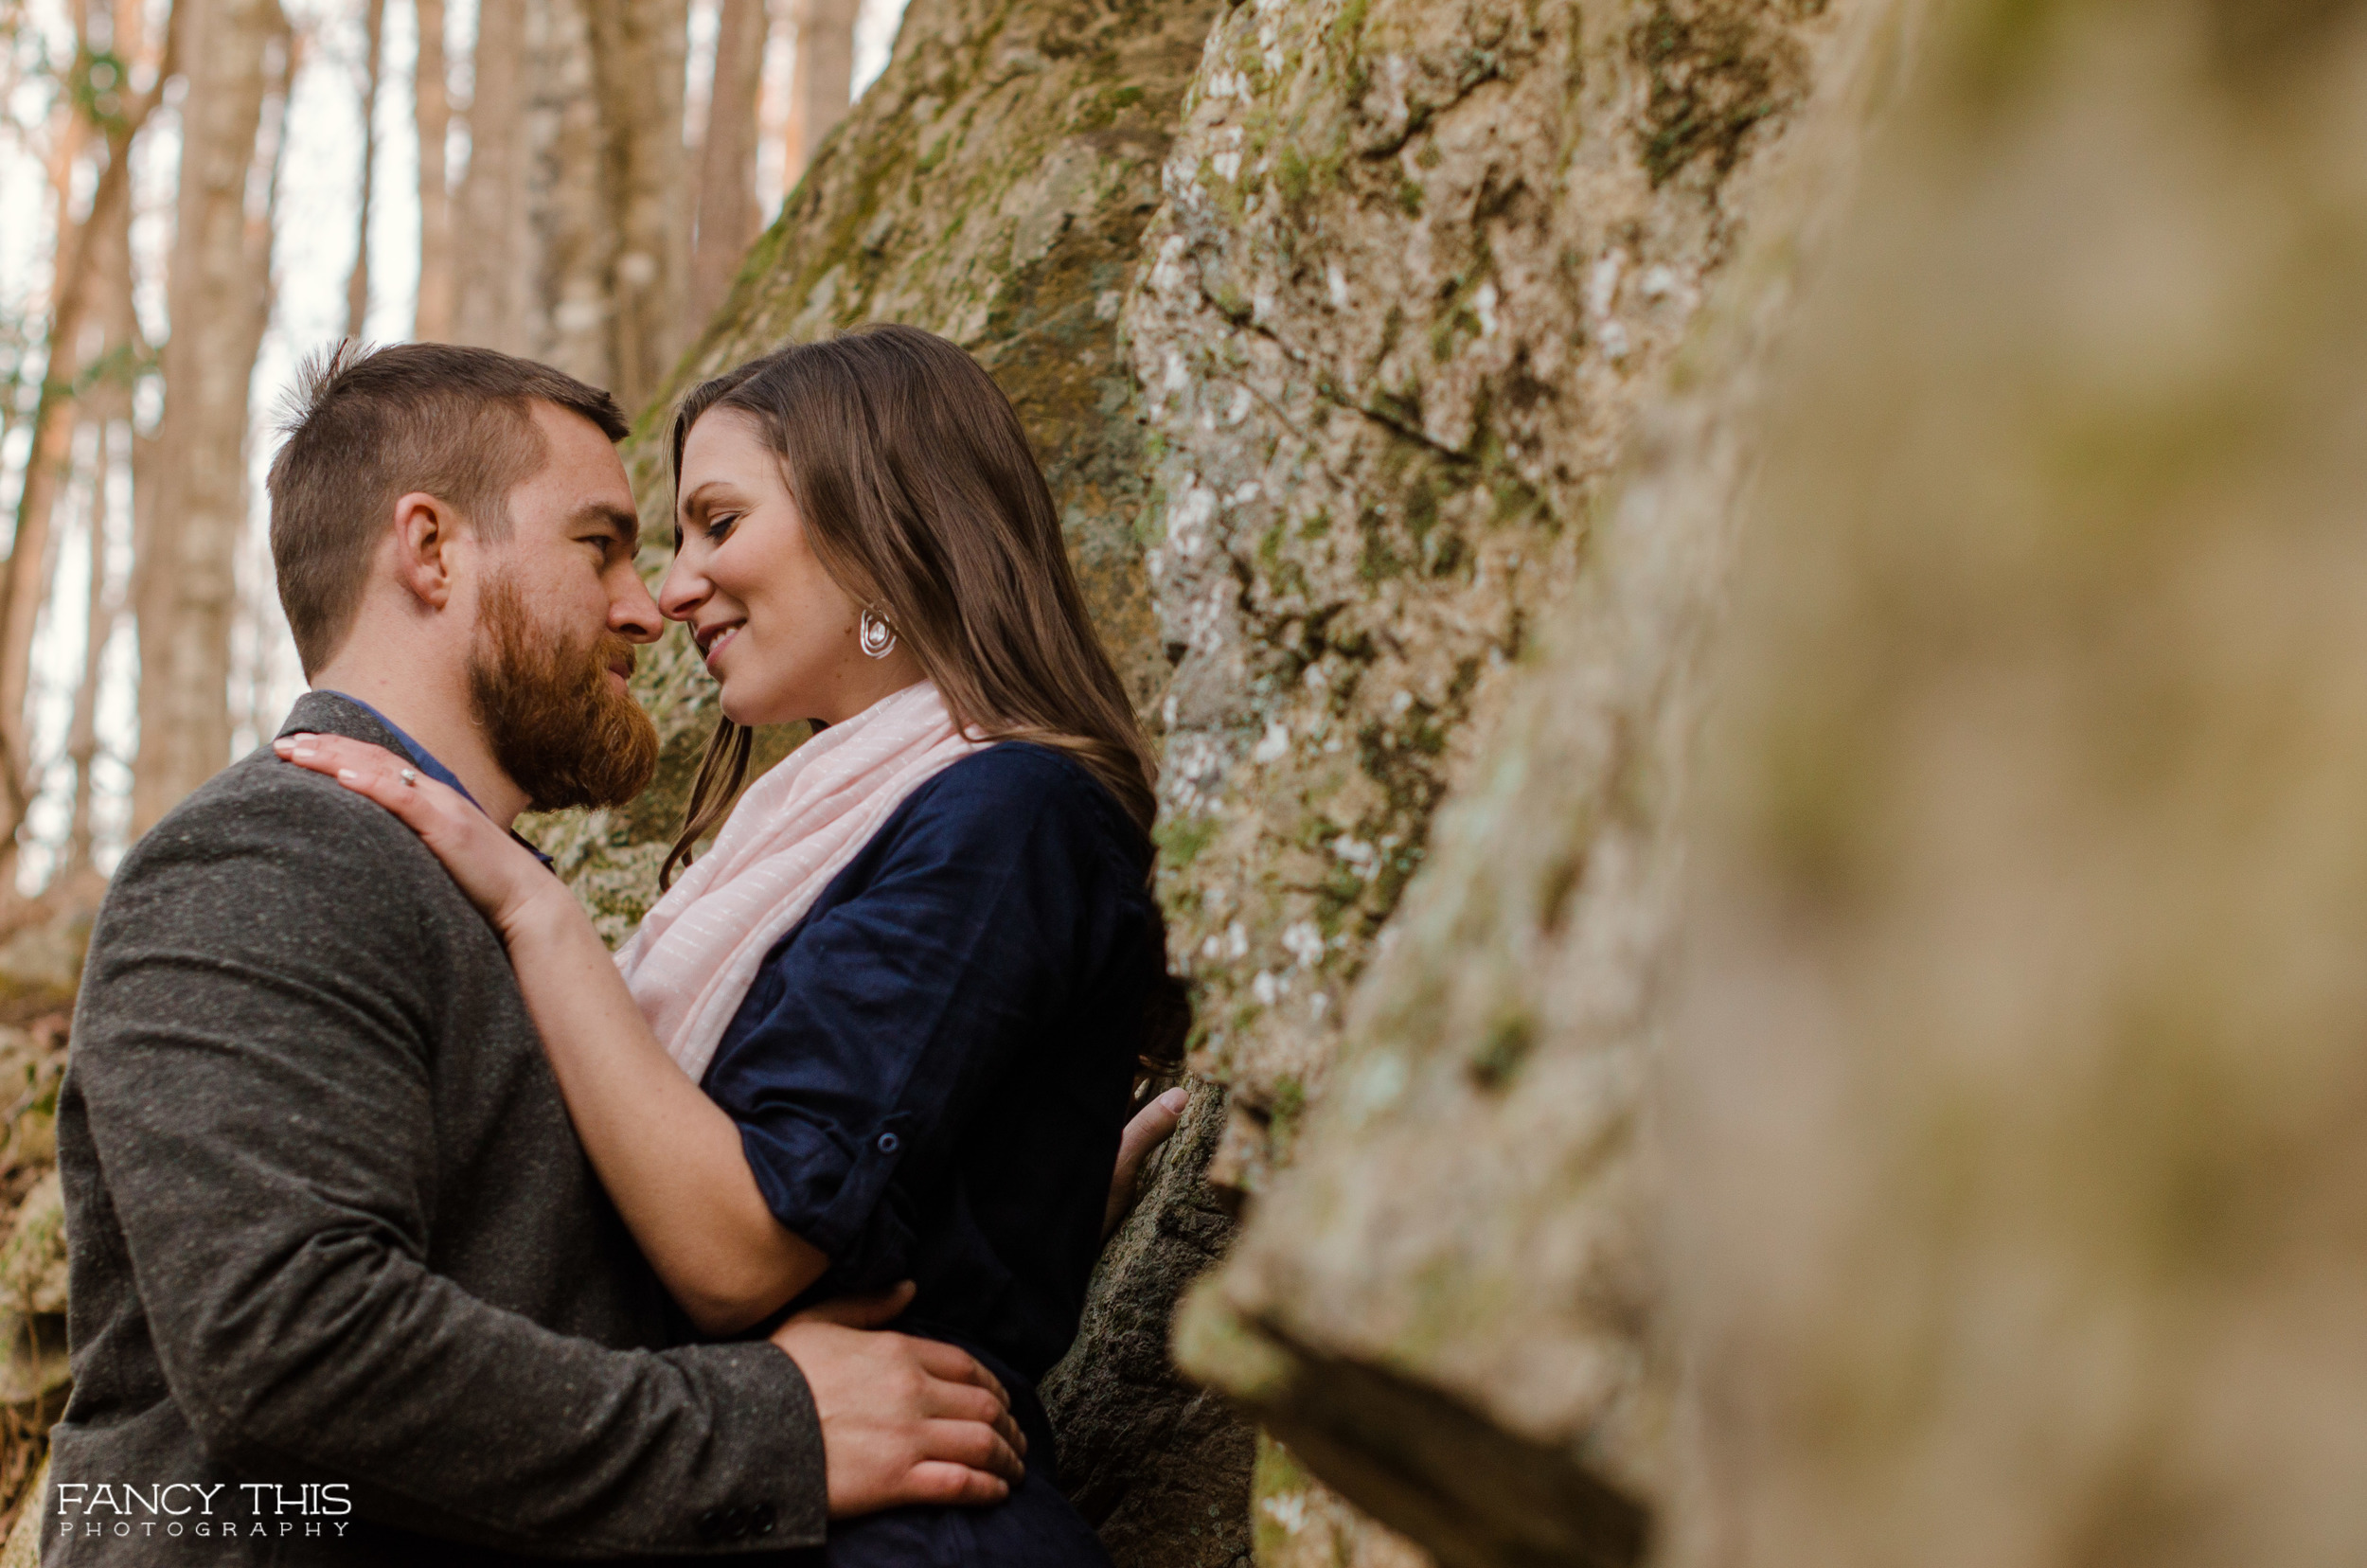 garrett_diana_engagement (106 of 130).jpg